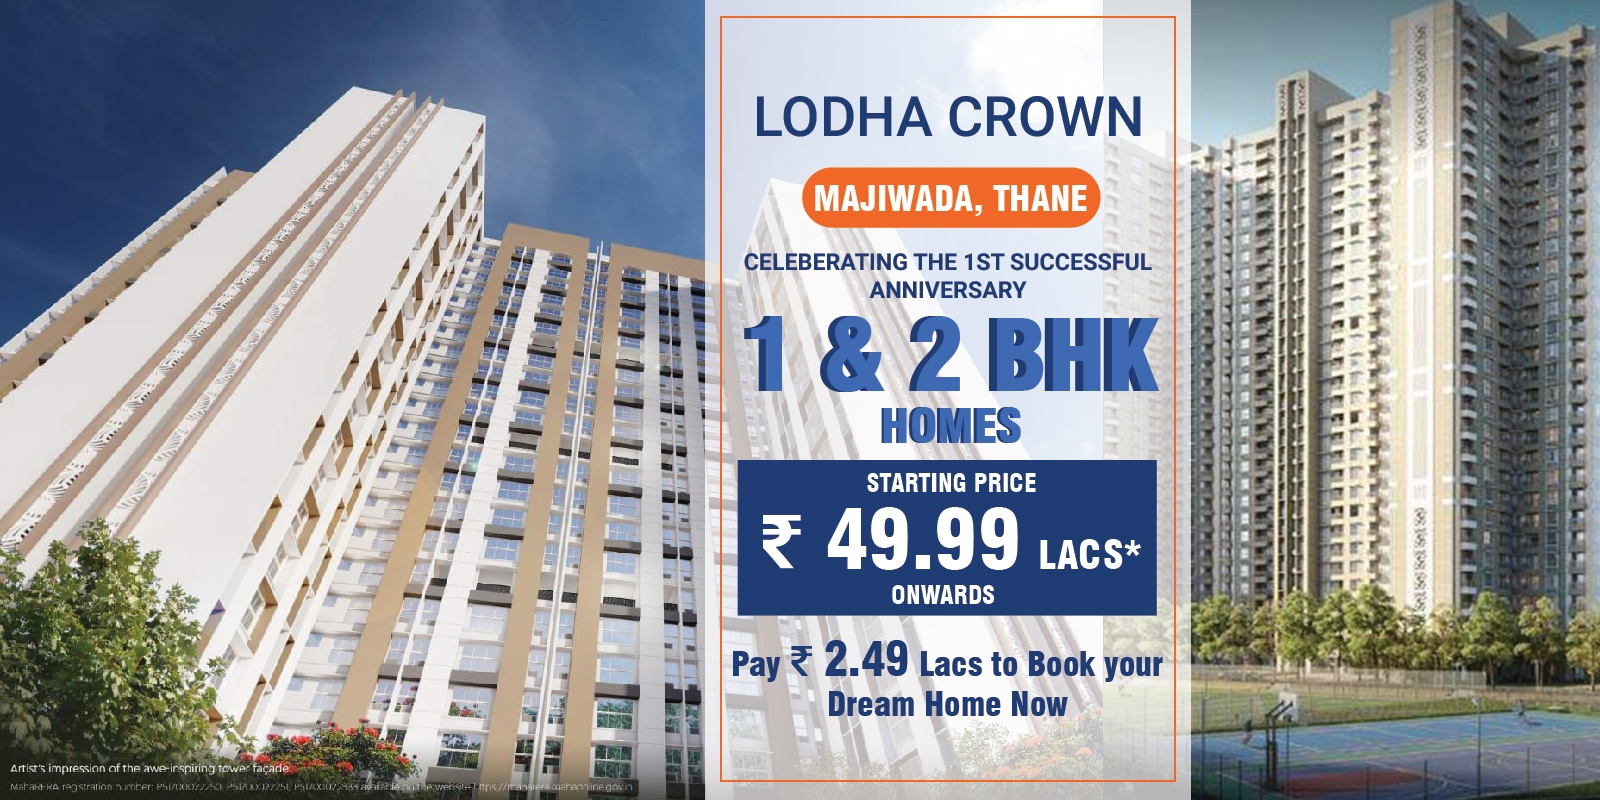 Lodha Crown Majiwada Thane